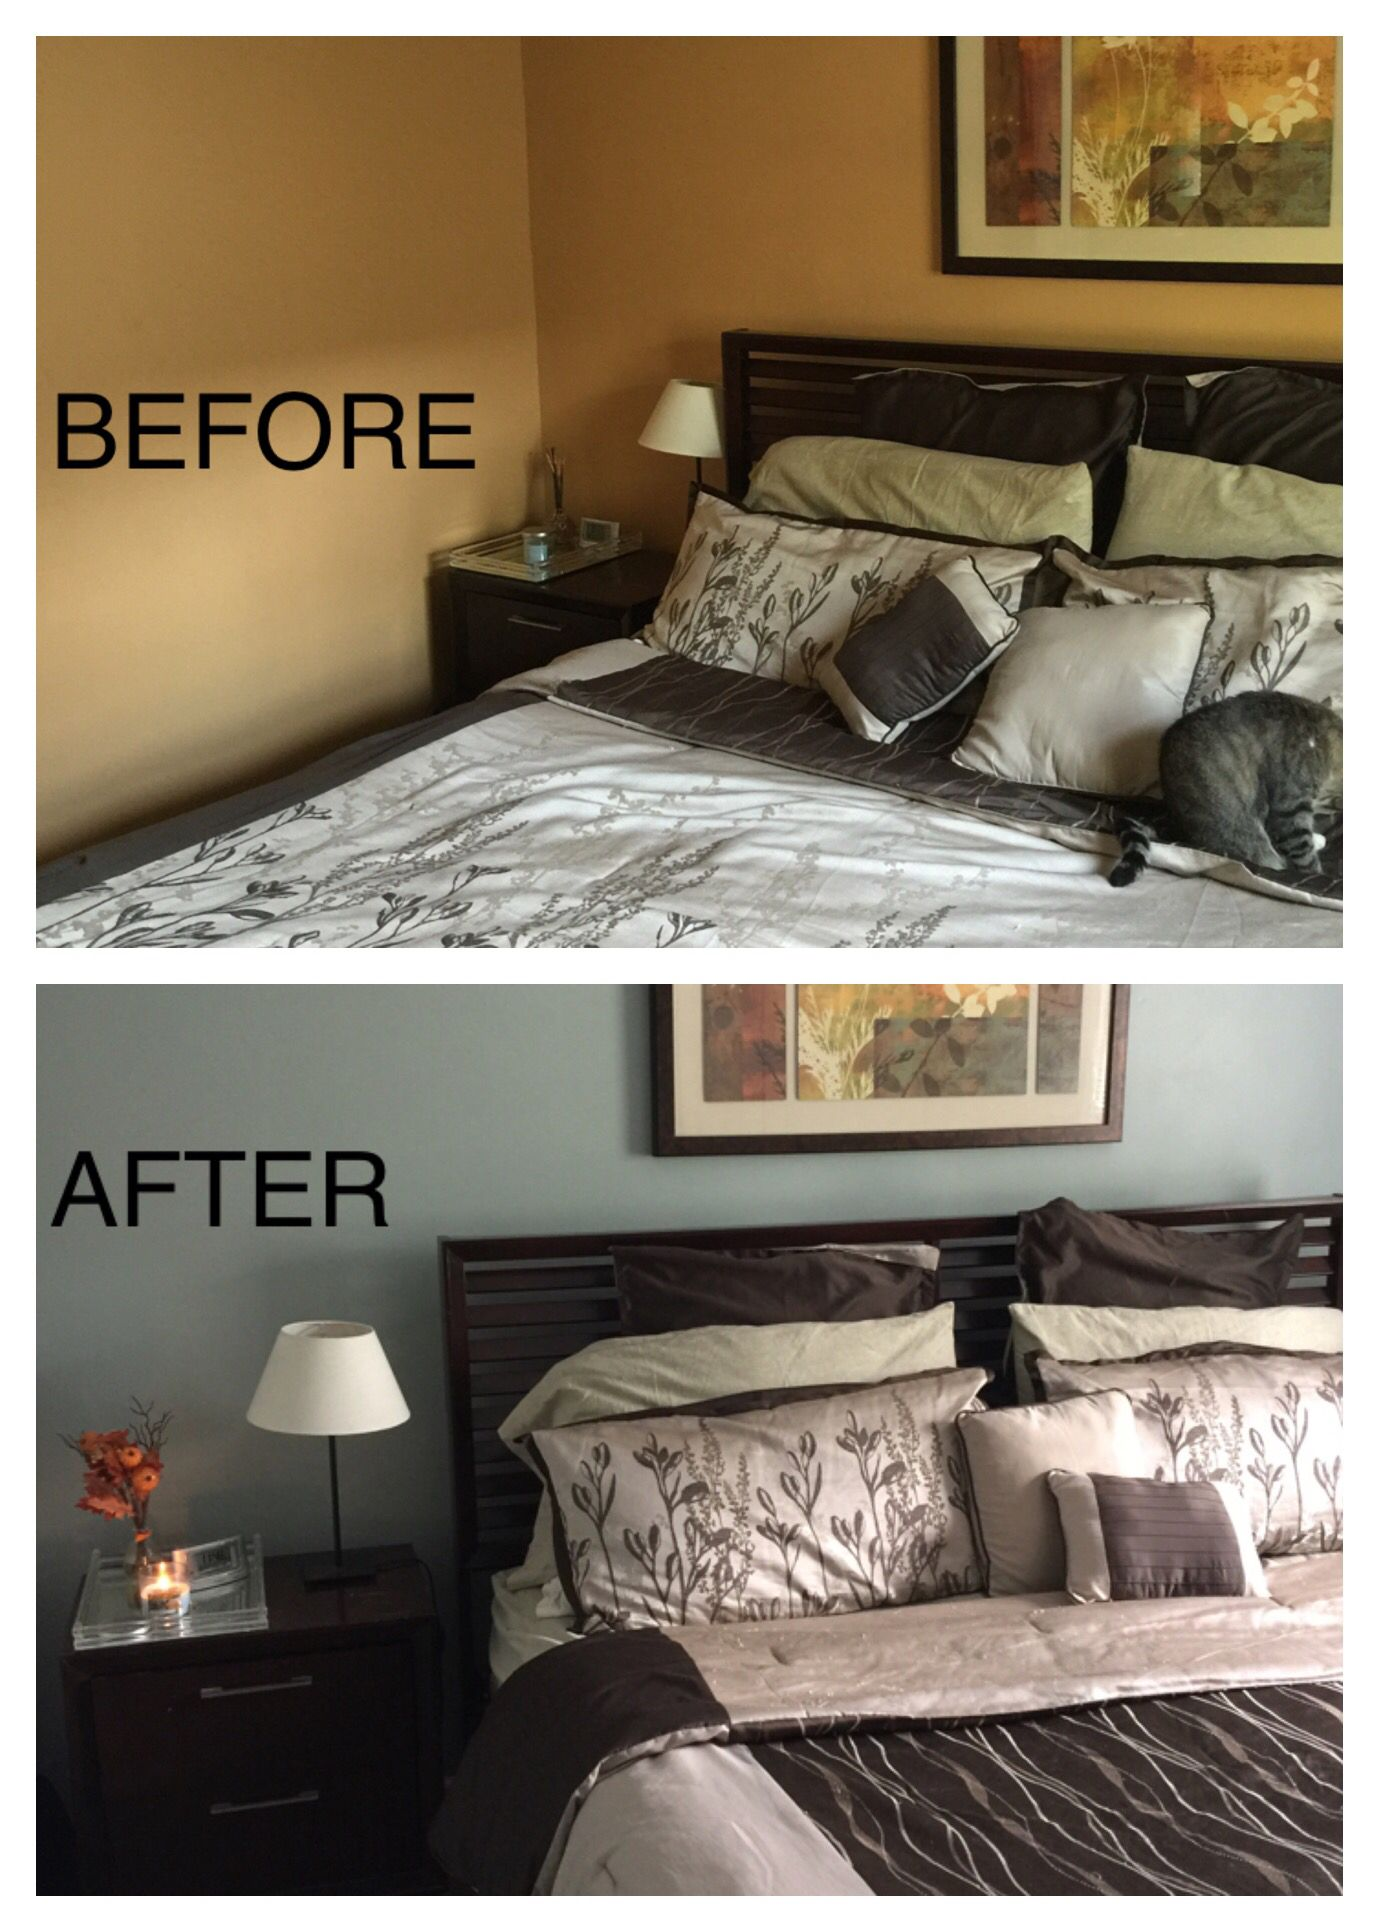 It S Amazing What A Little Paint Can Do To A Room Out With Behr S Pumpkin Butter And In With Sh Relaxing Paint Colors Sherwin Williams Paint Colors Home Decor